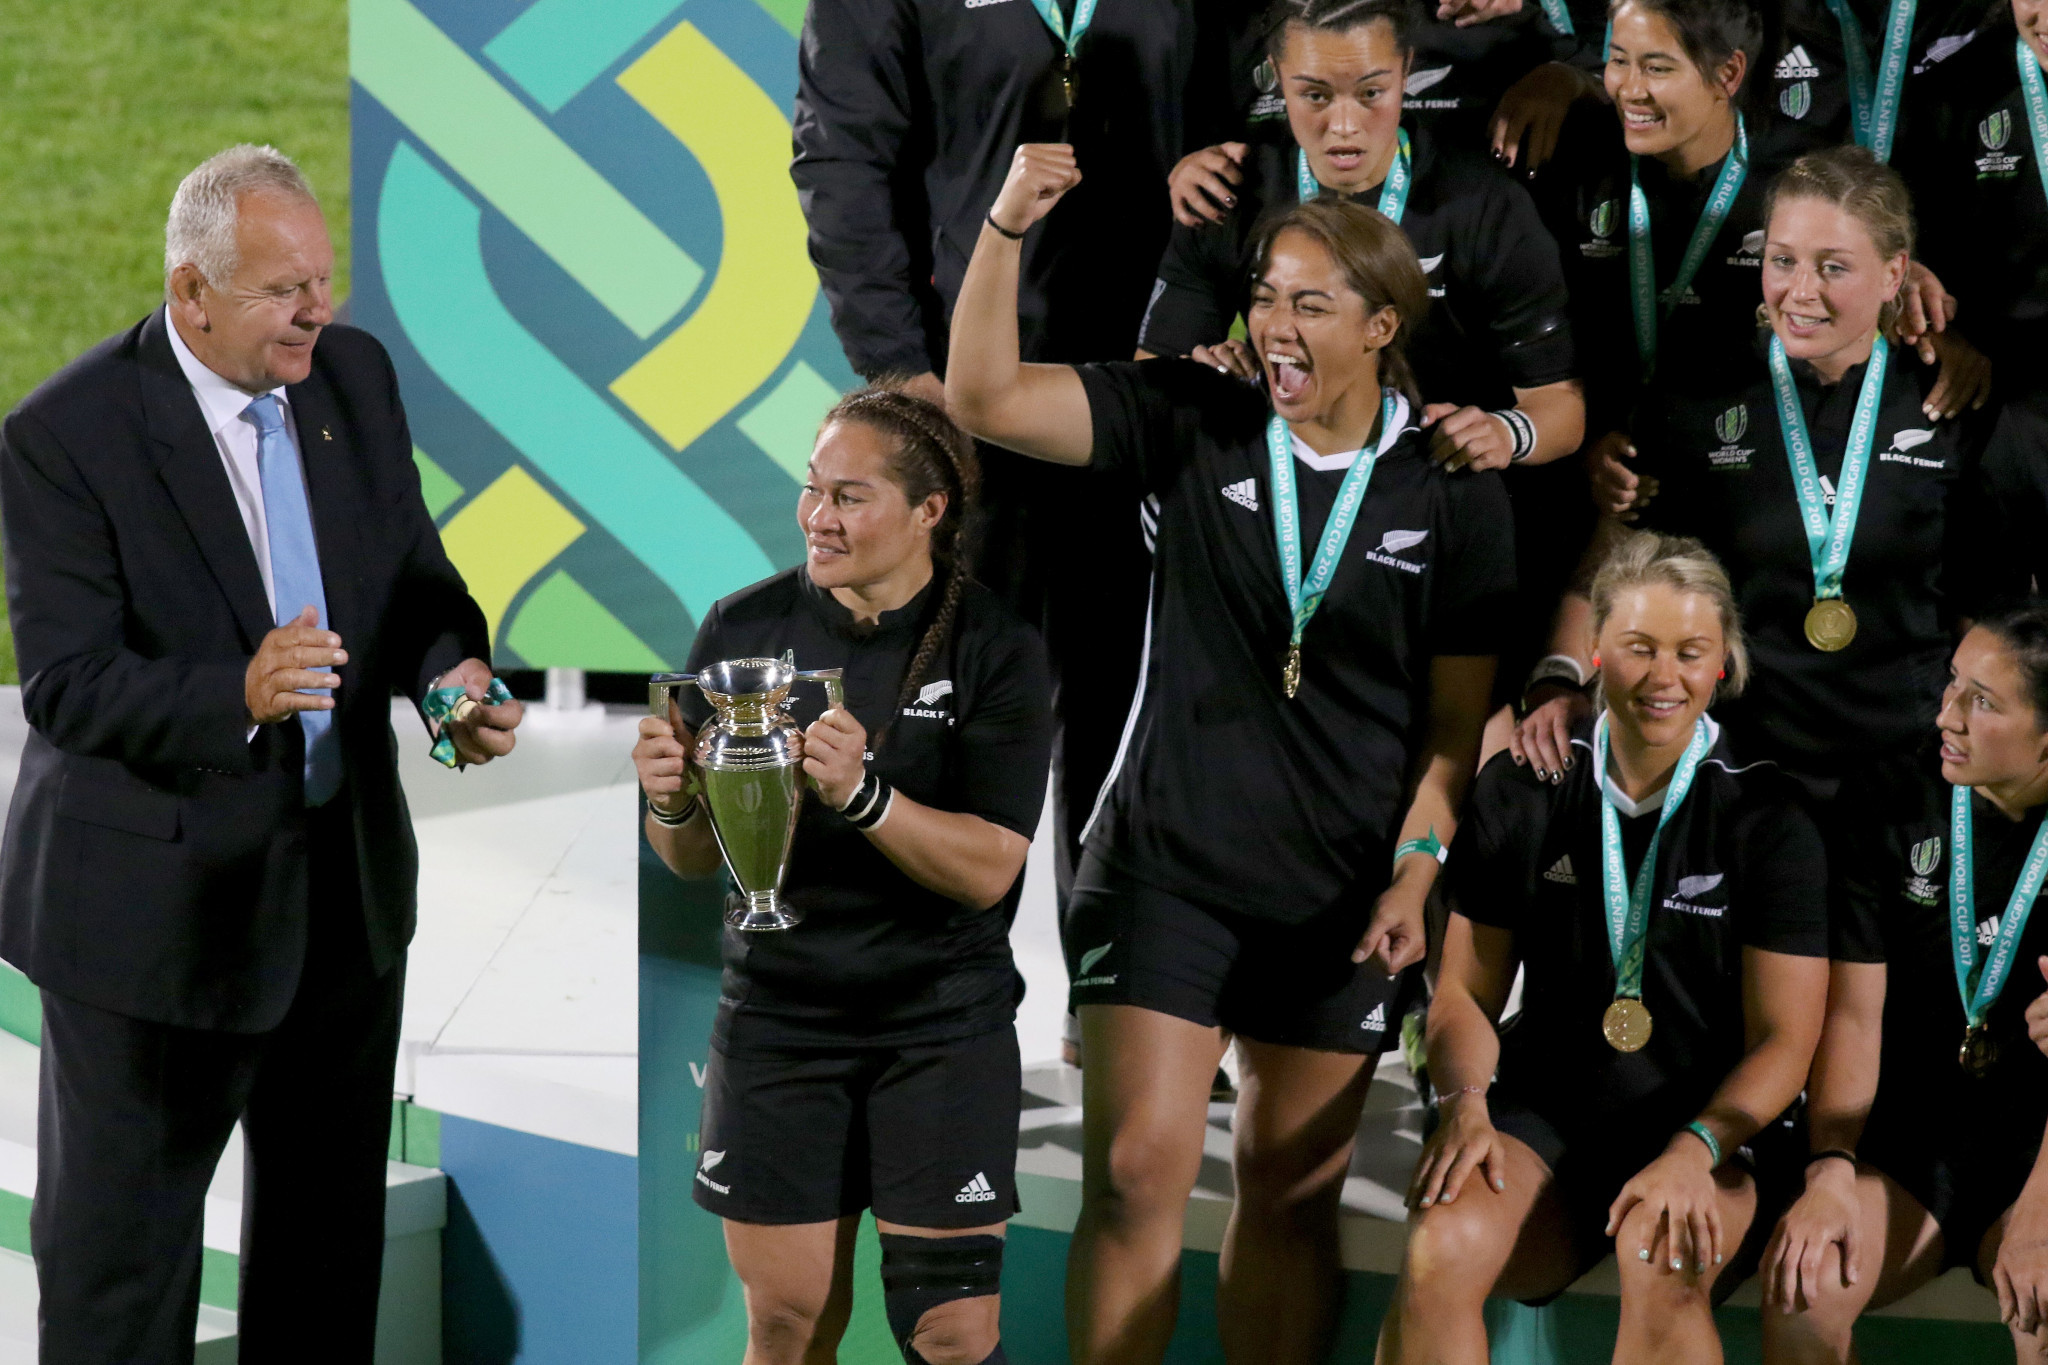 A successful Women's Rugby World Cup in Ireland in 2017 was part of the growing influence of females on the sport during his first four-year term as World Rugby chairman, Sir Bill Beaumont claimed ©Getty Images